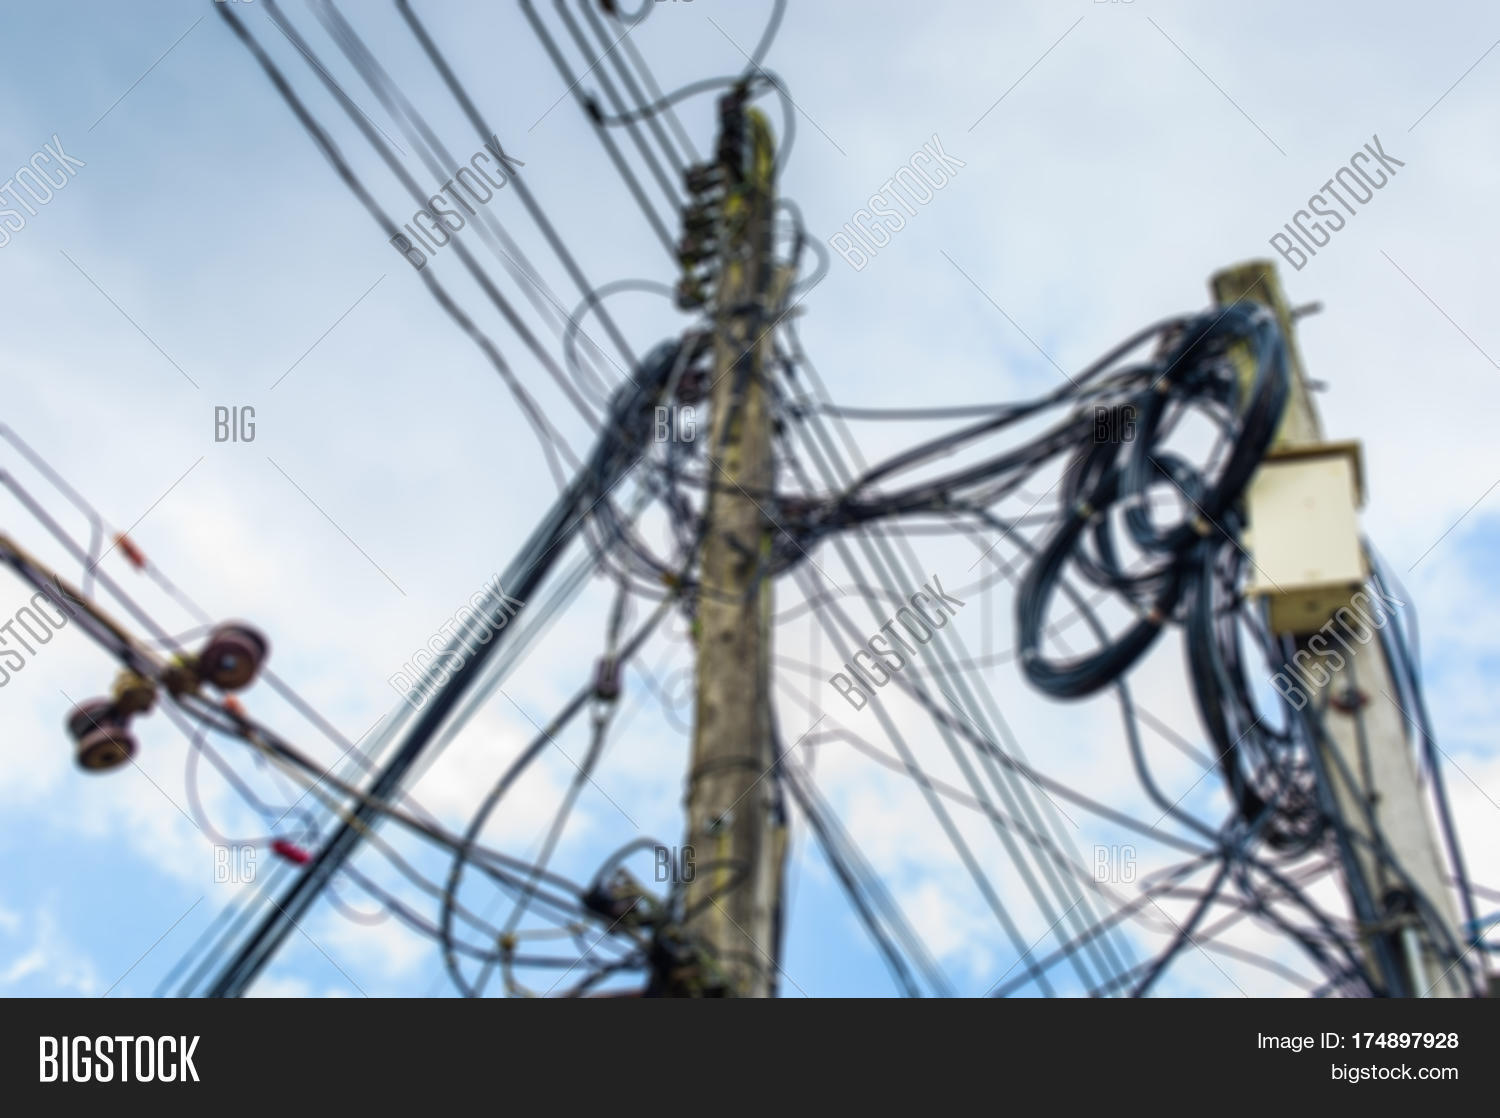 hight resolution of blurred high voltage power pole with wires tangled wire and cable clutter potential danger